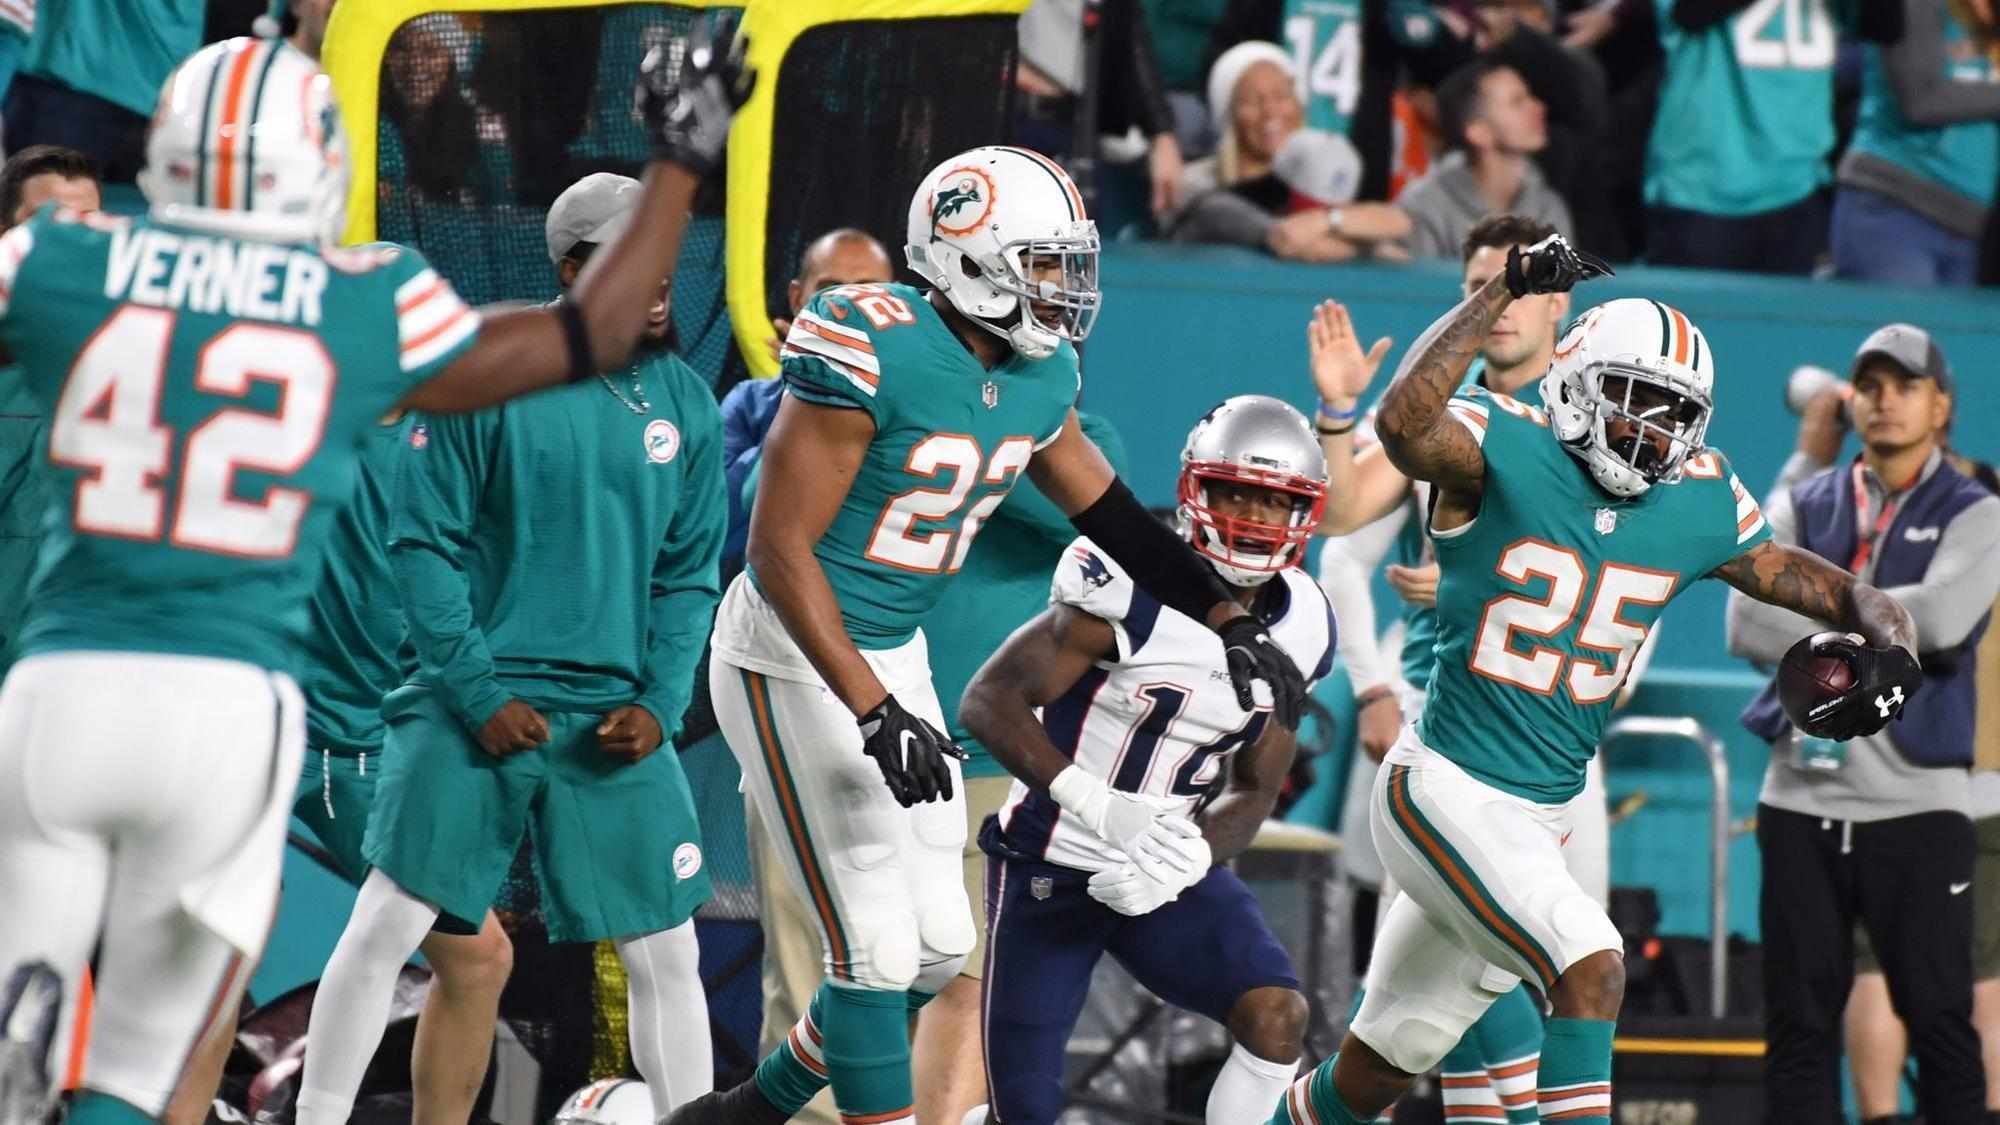 Fl-sp-dolphins-kelly-column-20171214